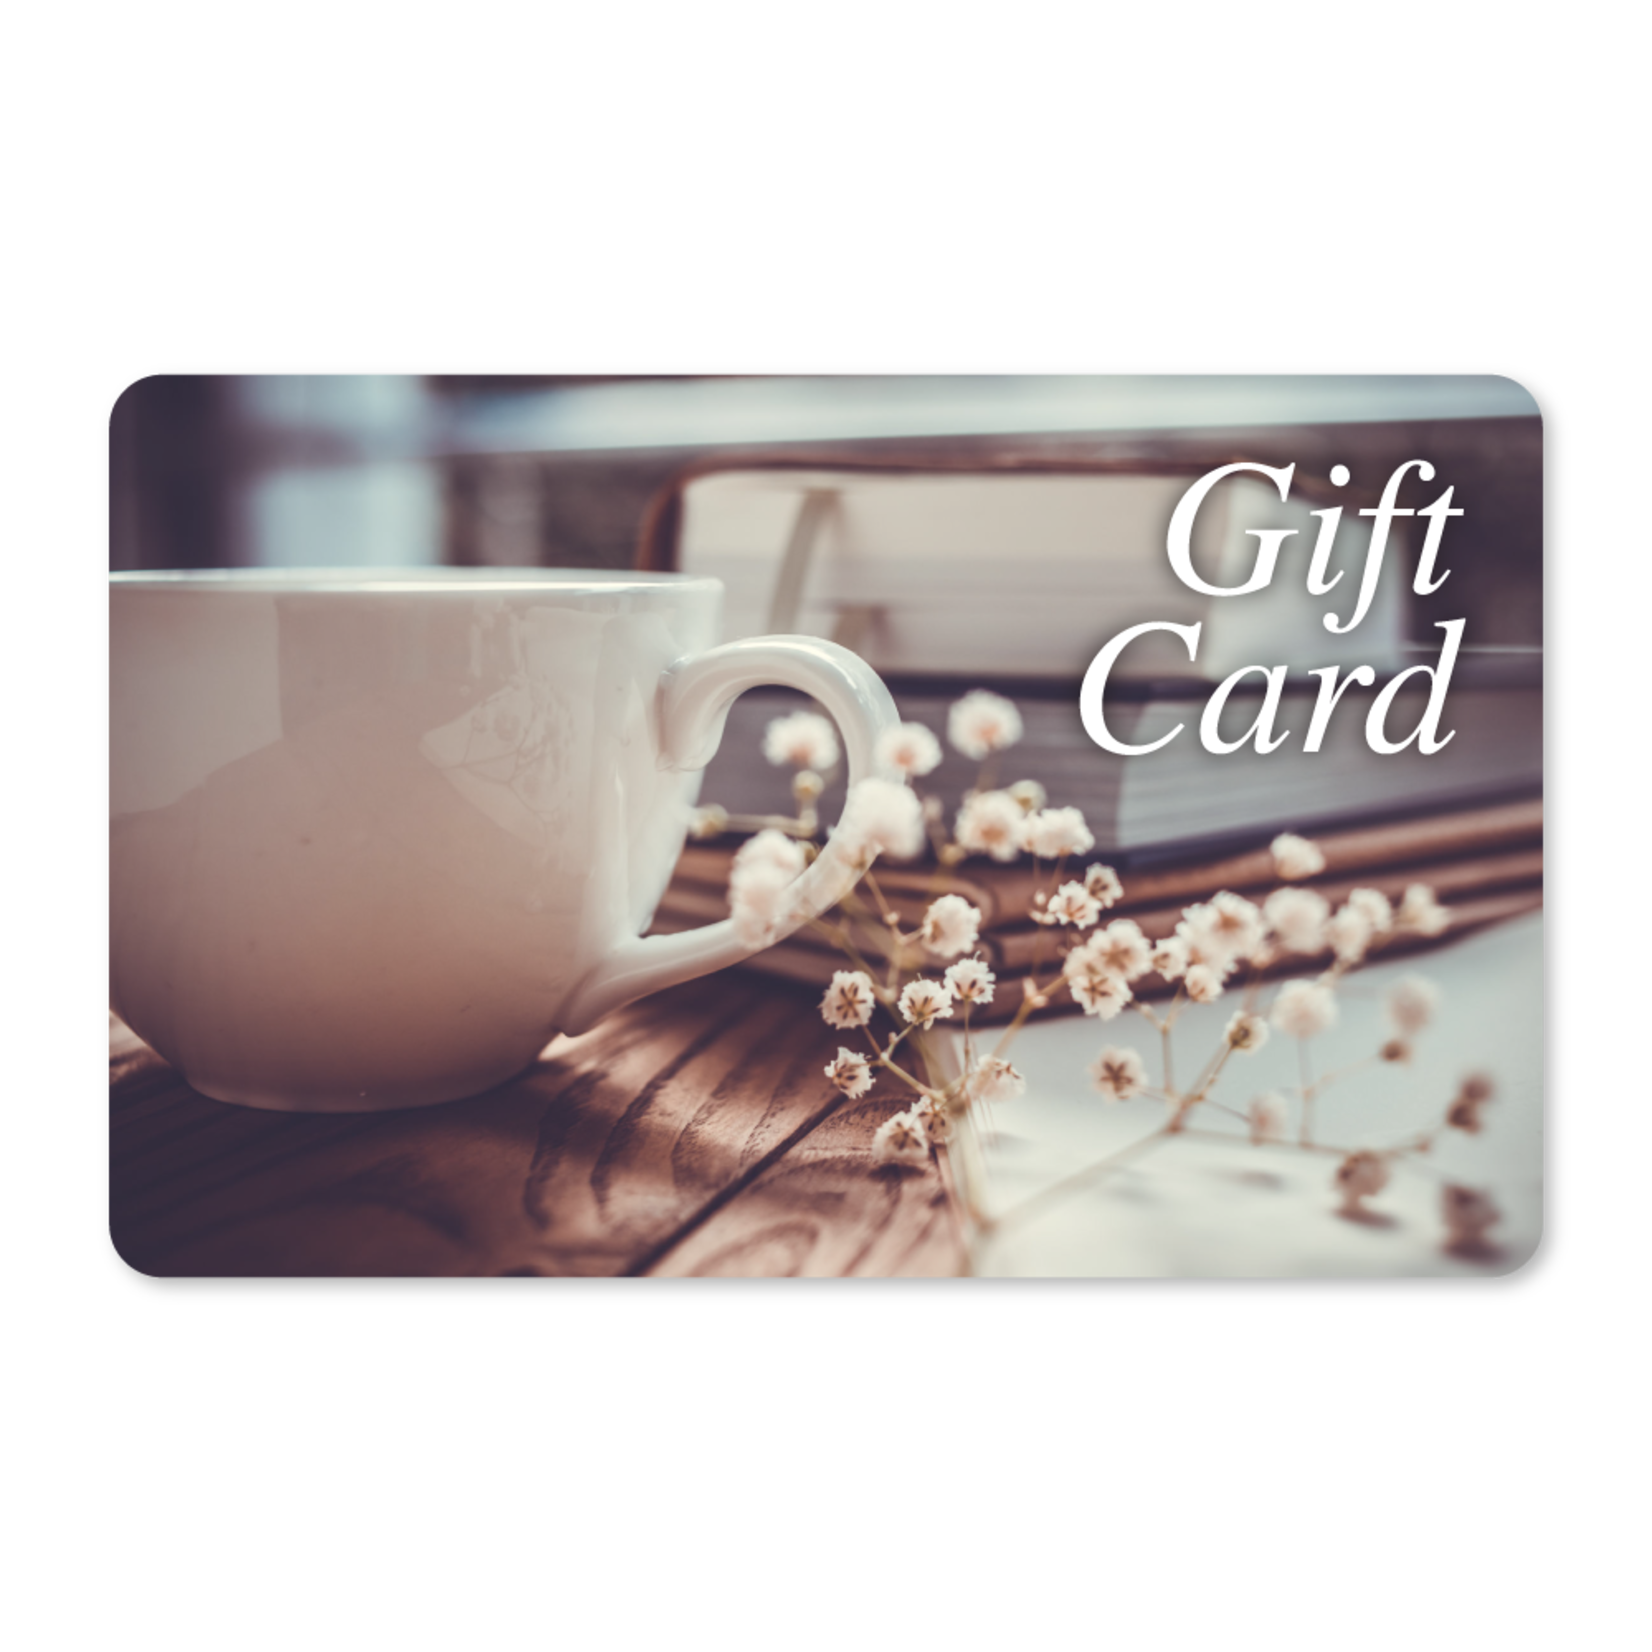 Gift Cards - Coffee Cup